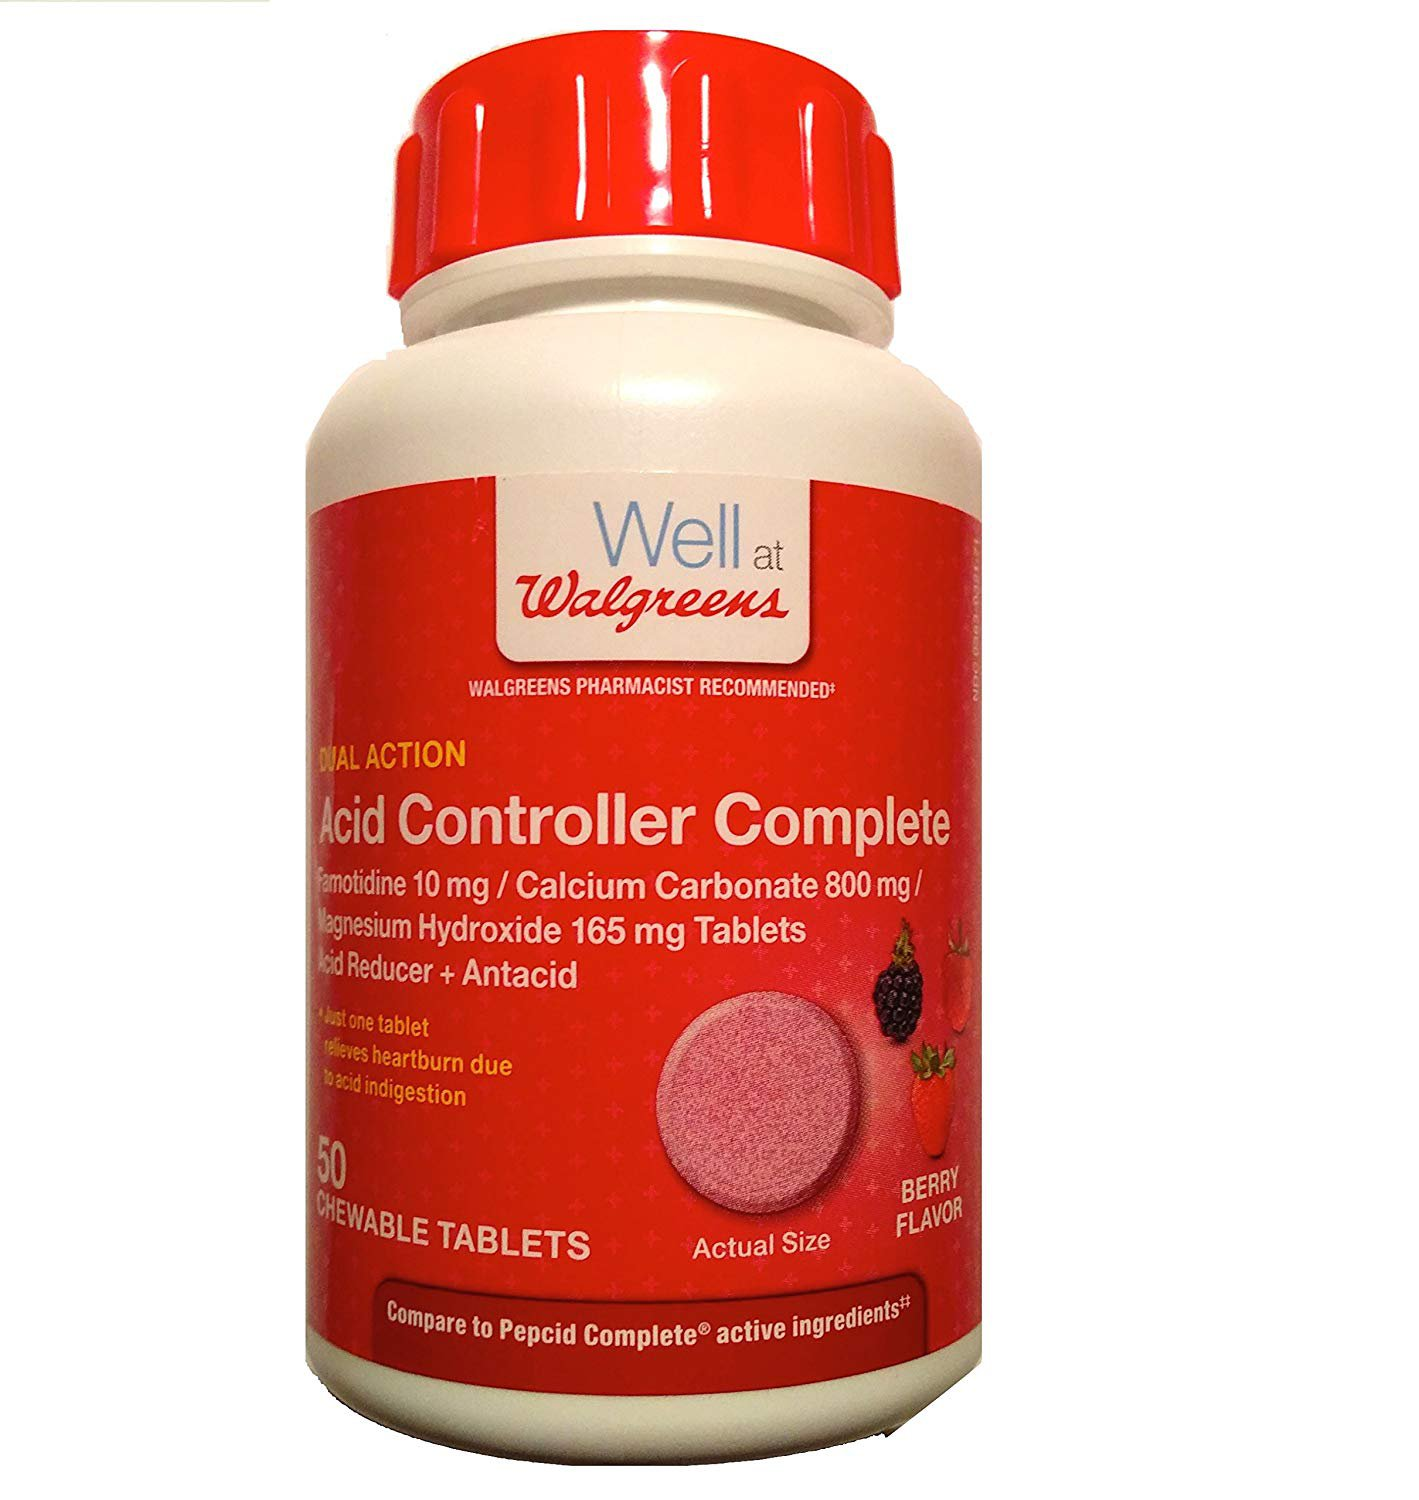 Walgreens Acid Controller Complete Chewable Tablets, 50 Tablets (Berry)